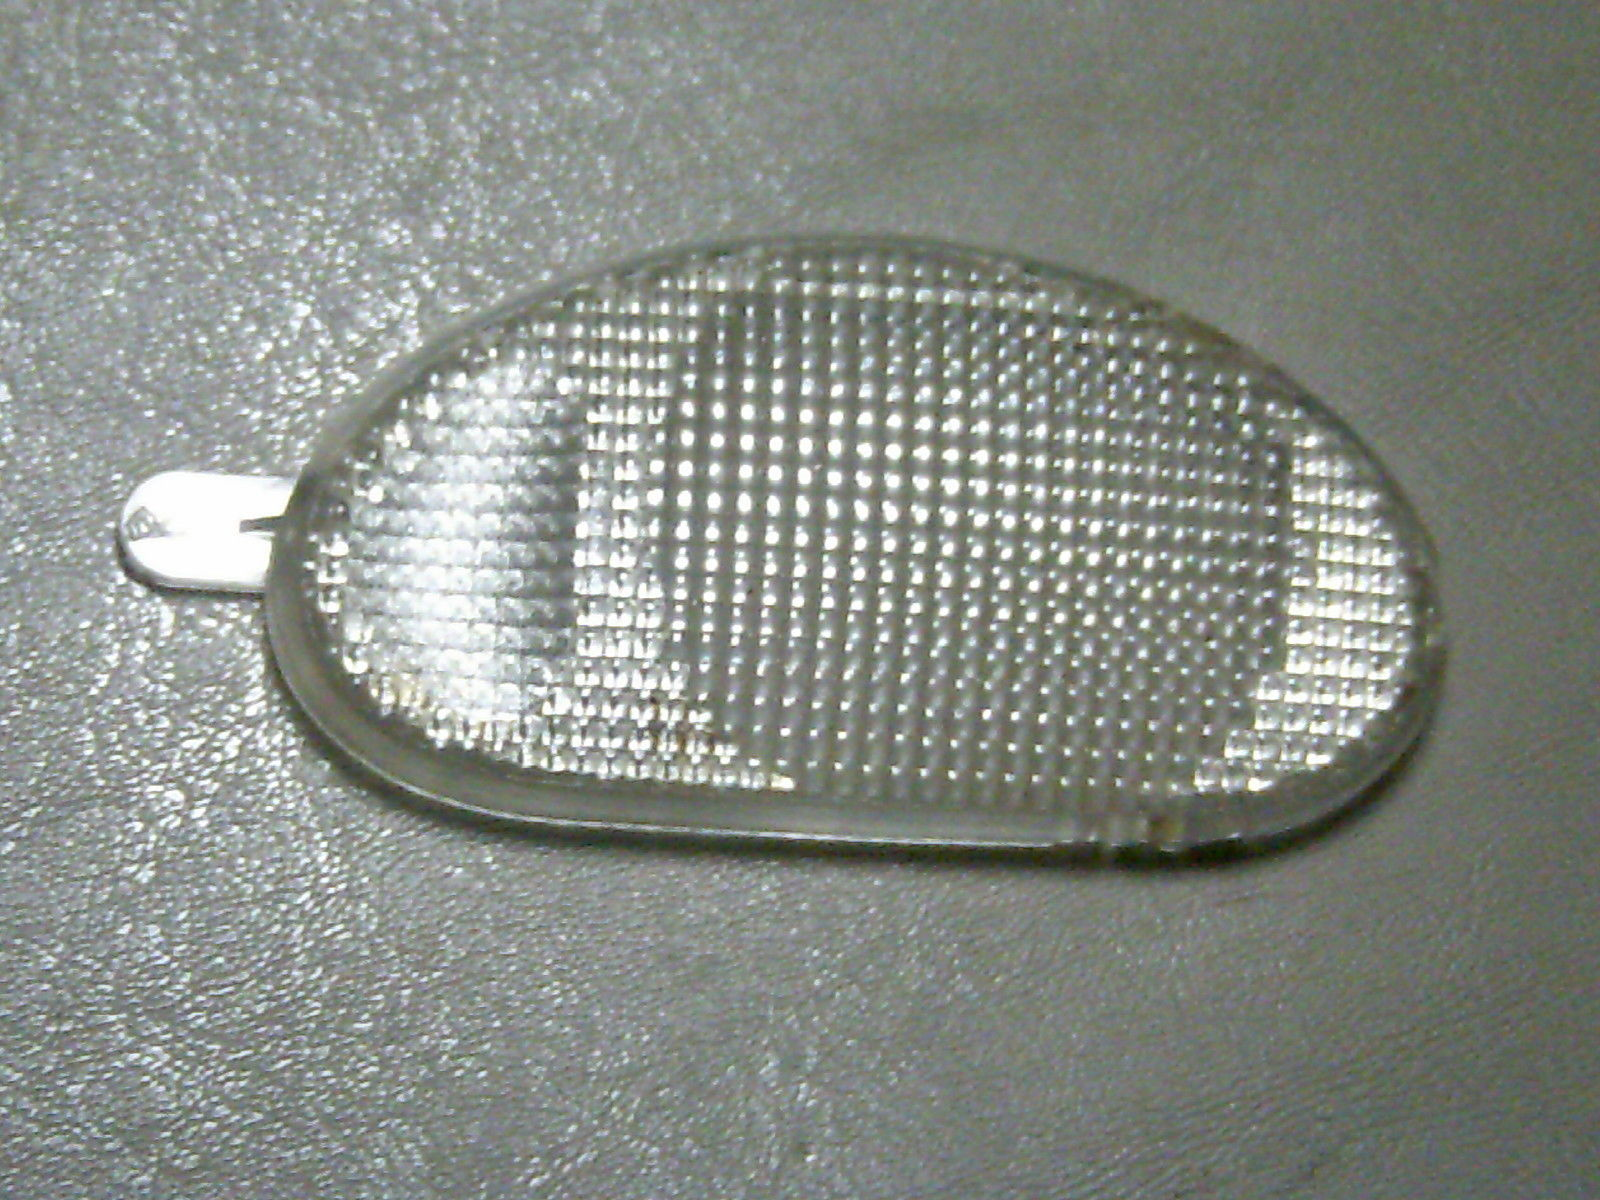 Primary image for 99 1999 Dodge Caravan Overhead Console Housing Light Lens / Next To Step Button